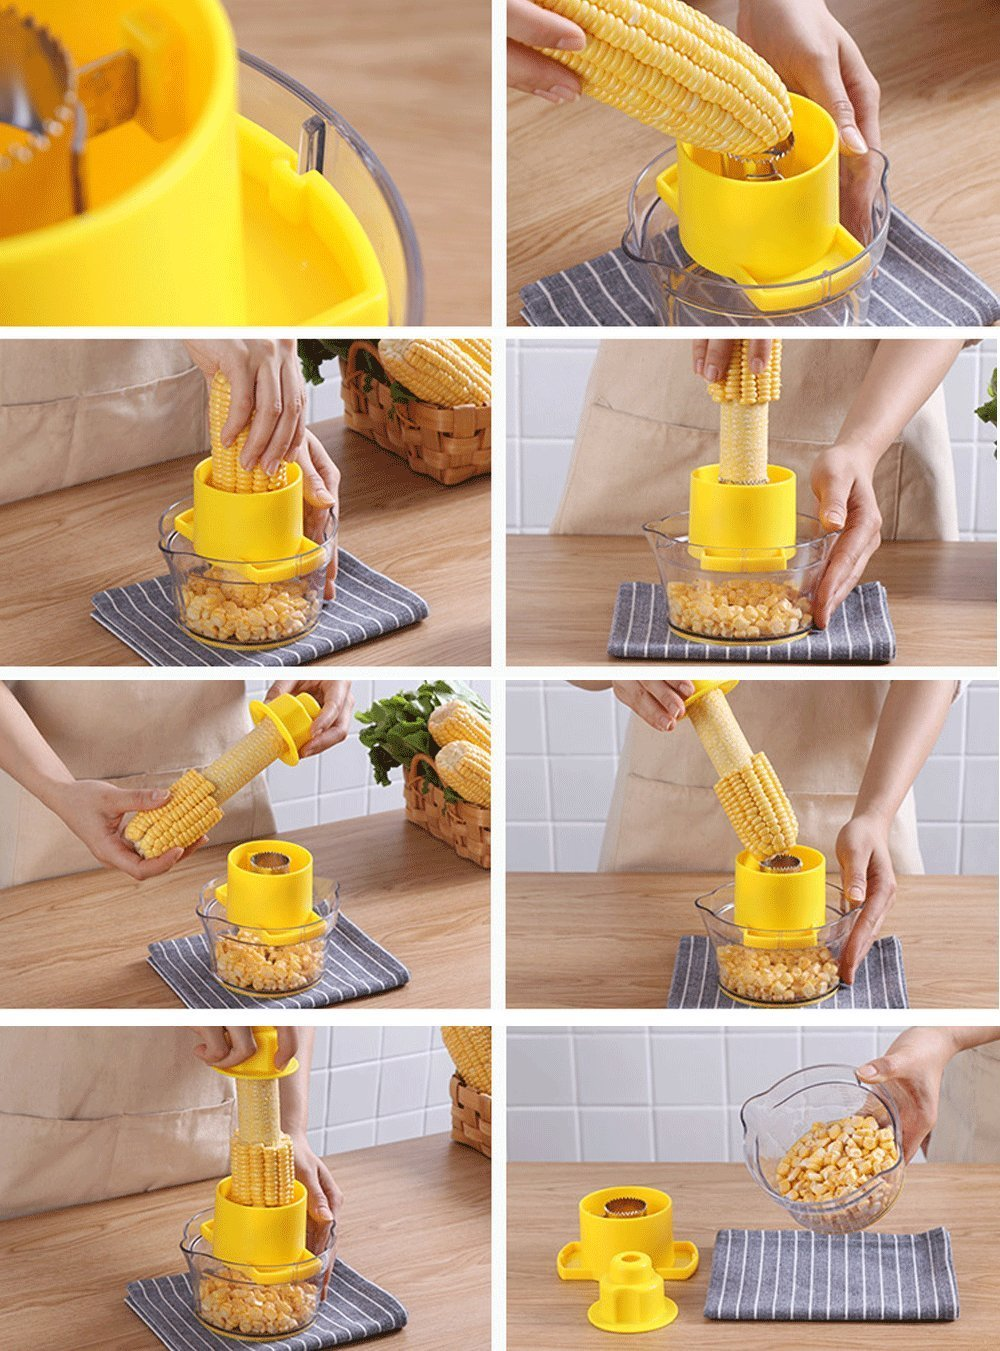 Multifunction Corn Stripper